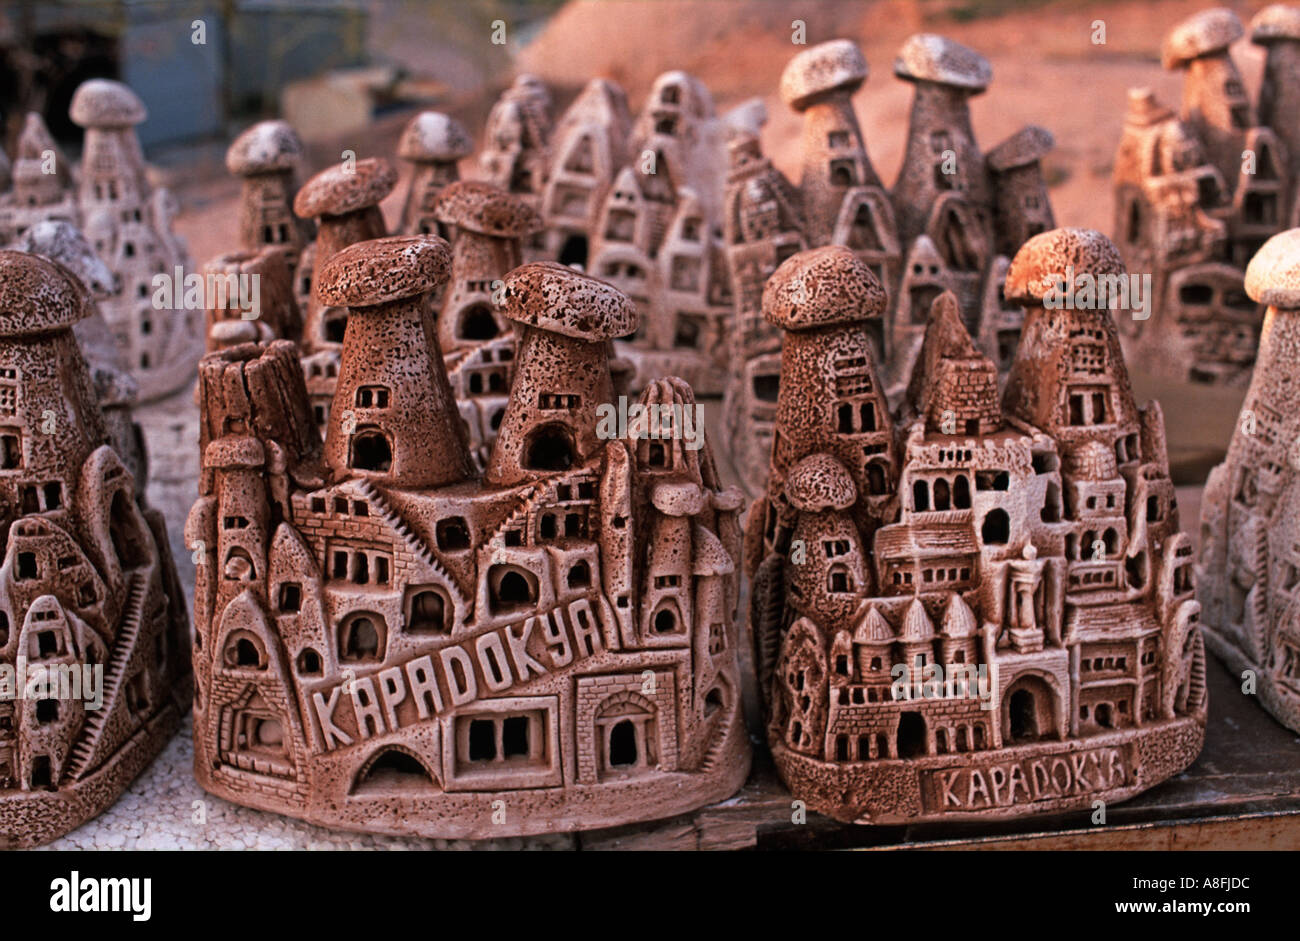 Tourist souvenirs carved and cast in the likeness of some of the highlights of Cappadocia Central Anatolia Turkey - Stock Image